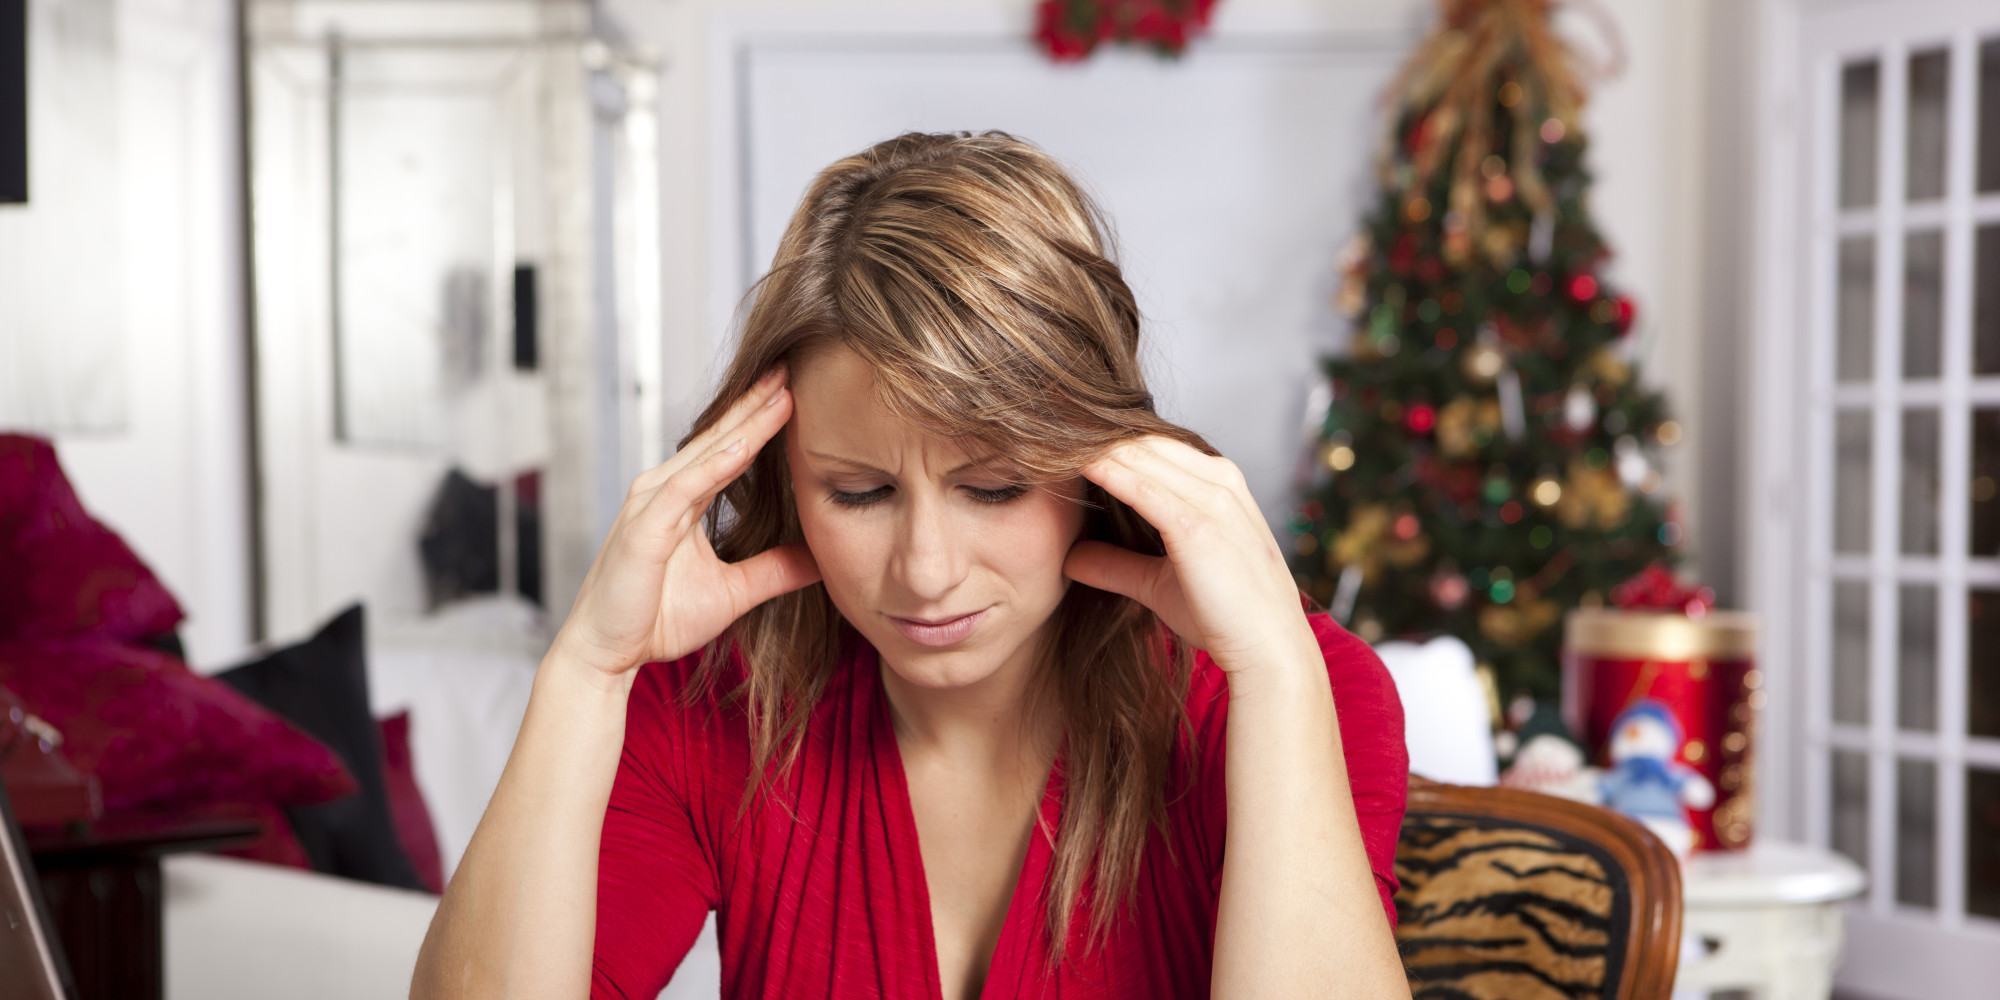 How To Cope With The Stress of The Christmas Season